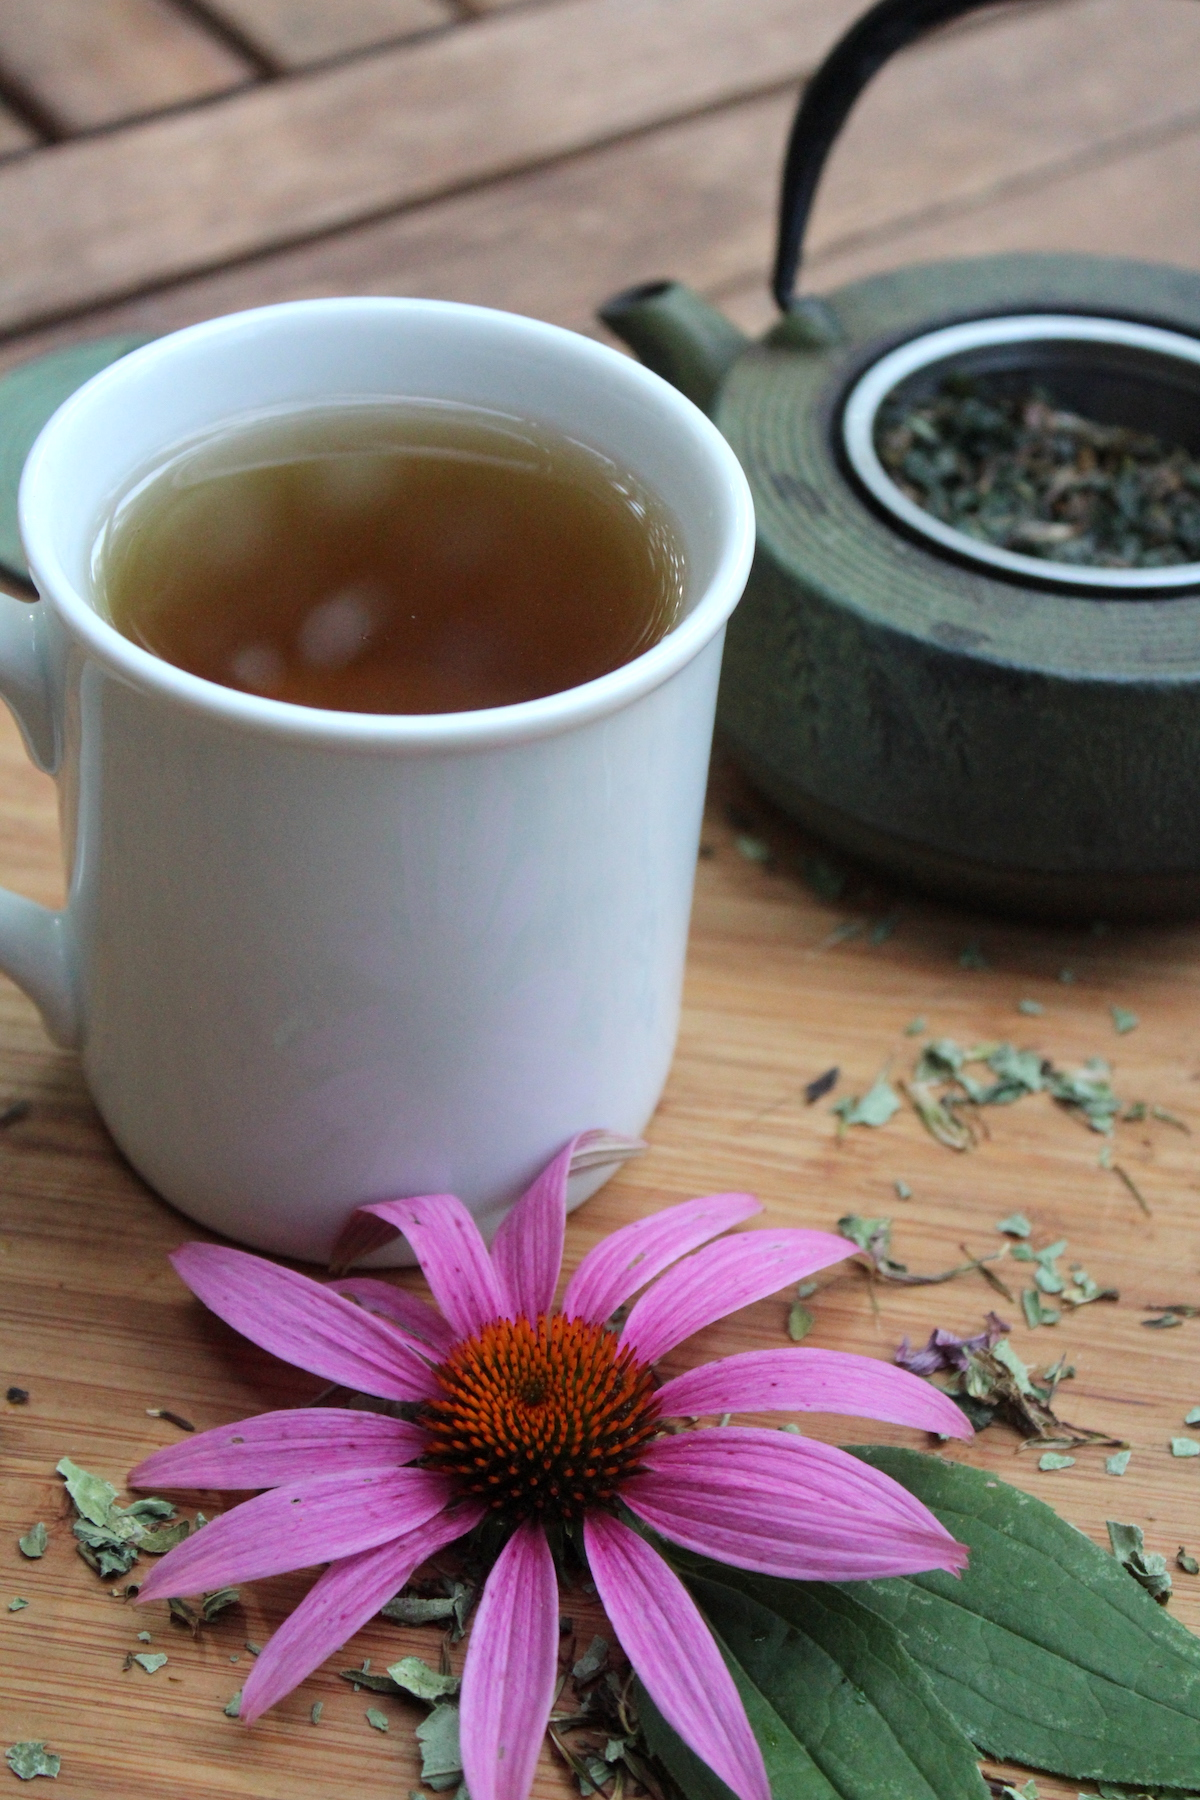 Homemade Echinacea Tea